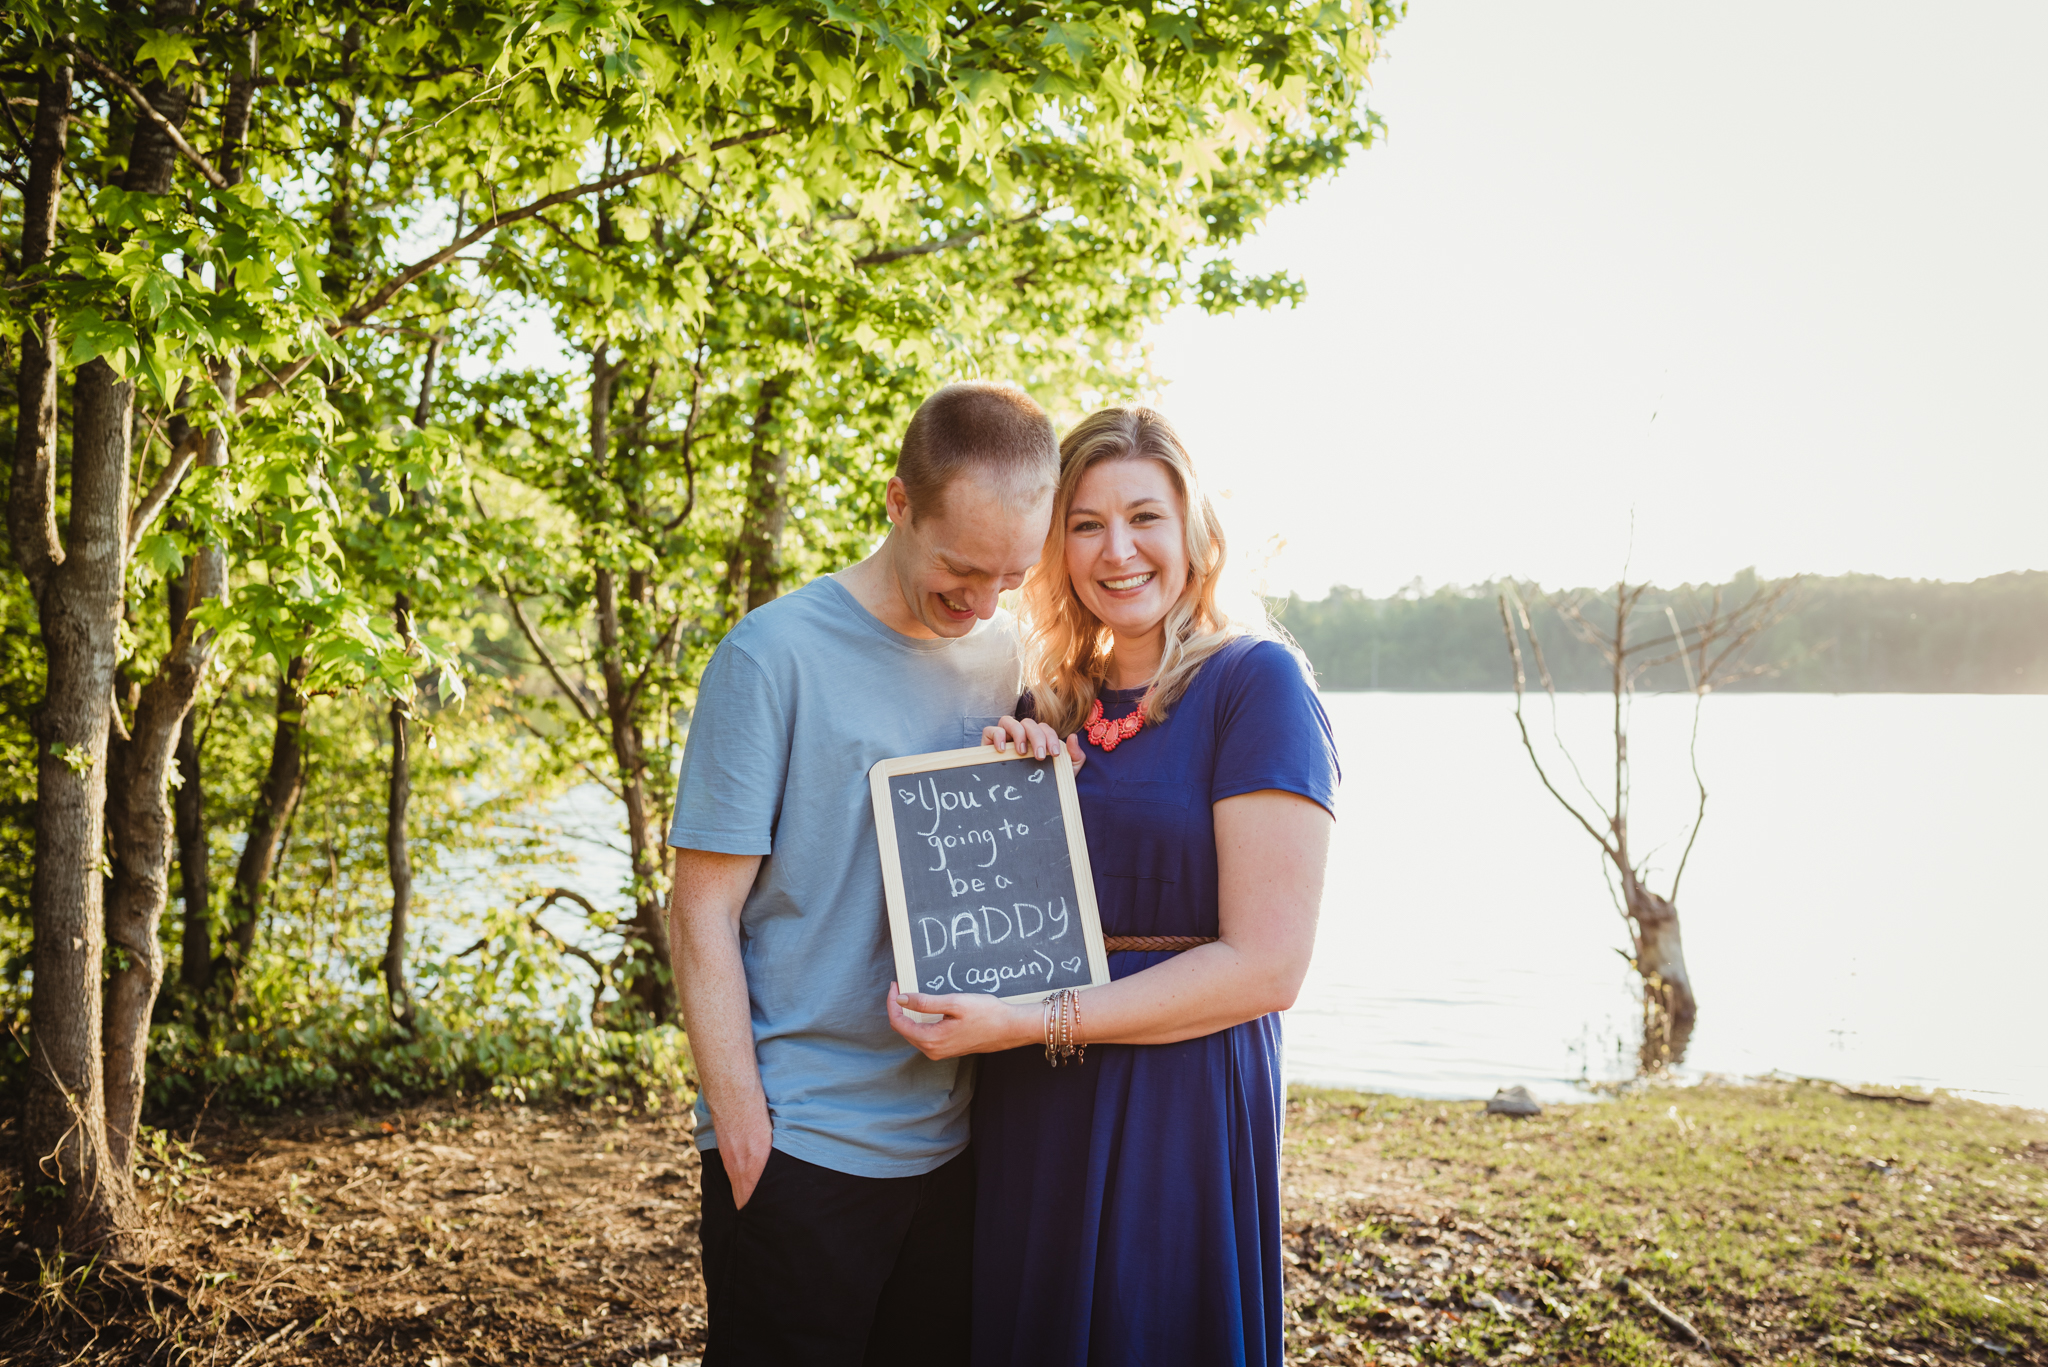 Raleigh family photography, Blue Jay Park, Manning family, pregnancy reveal